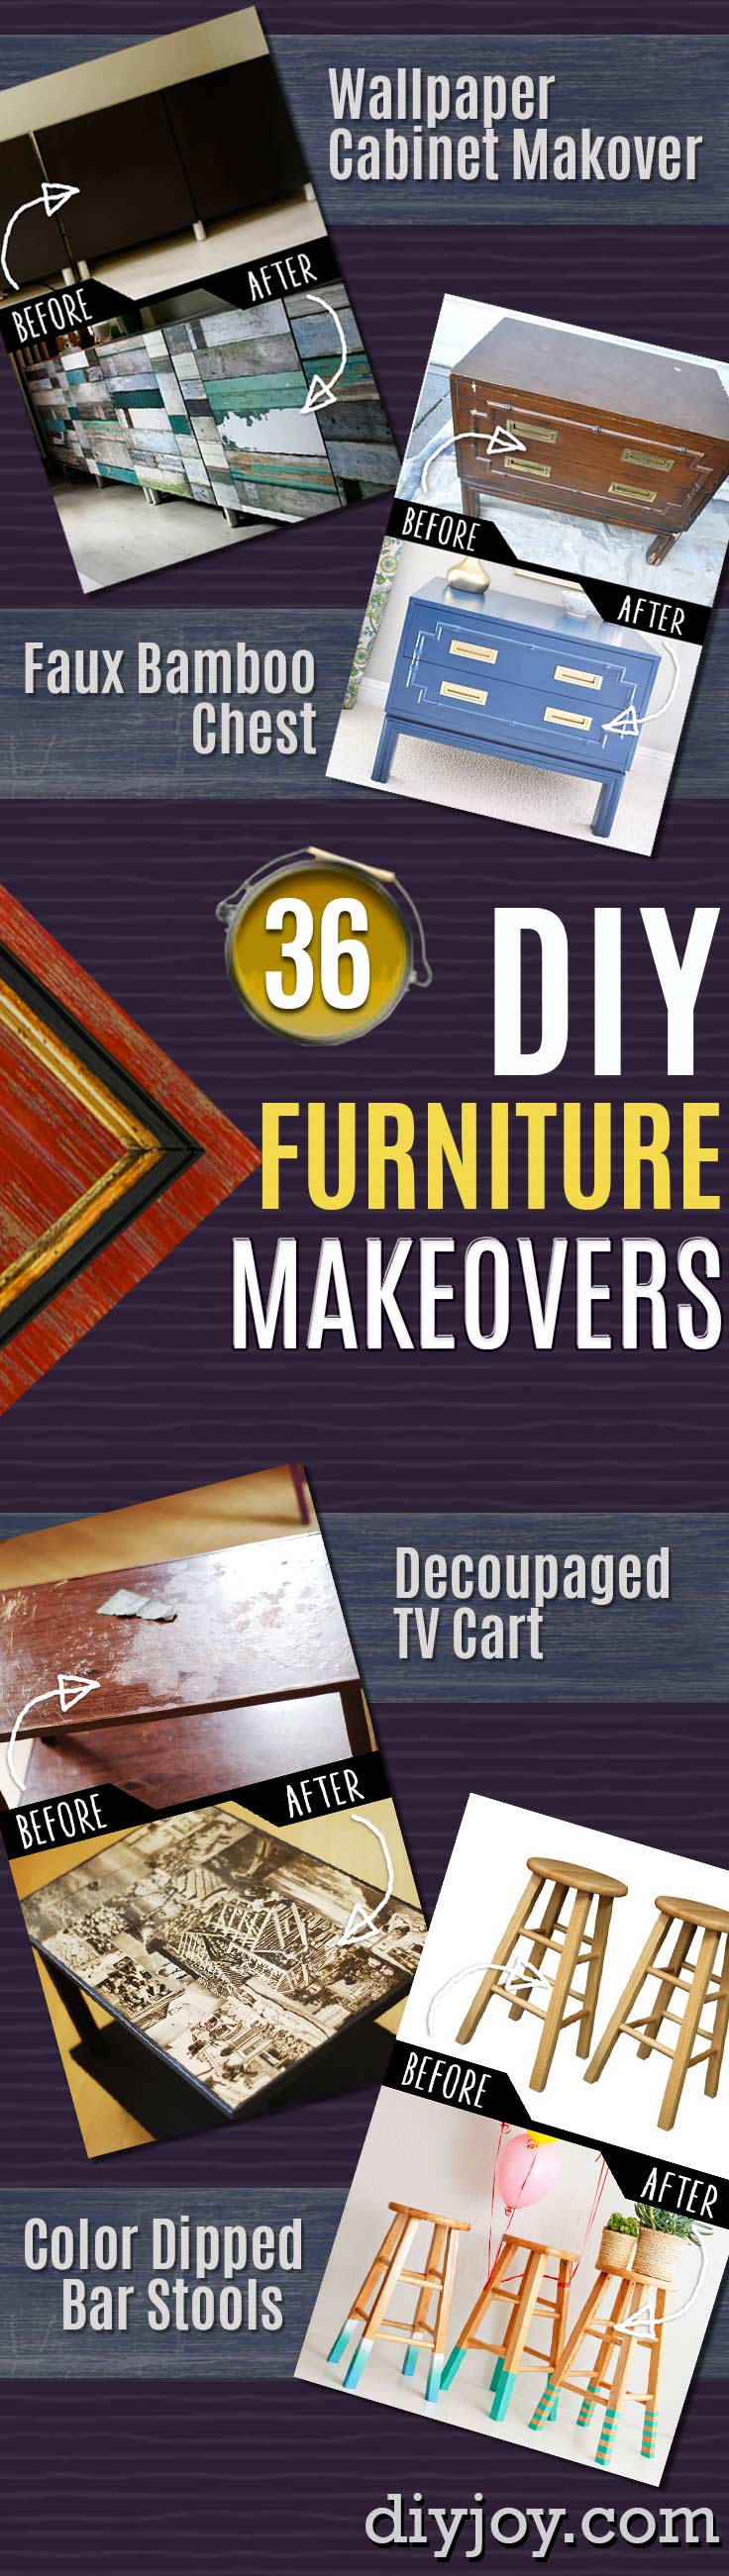 DIY Furniture Makeovers - Refurbished Furniture and Cool Painted Furniture Ideas for Thrift Store Furniture Makeover Projects   Coffee Tables, Dressers and Bedroom Decor, Kitchen